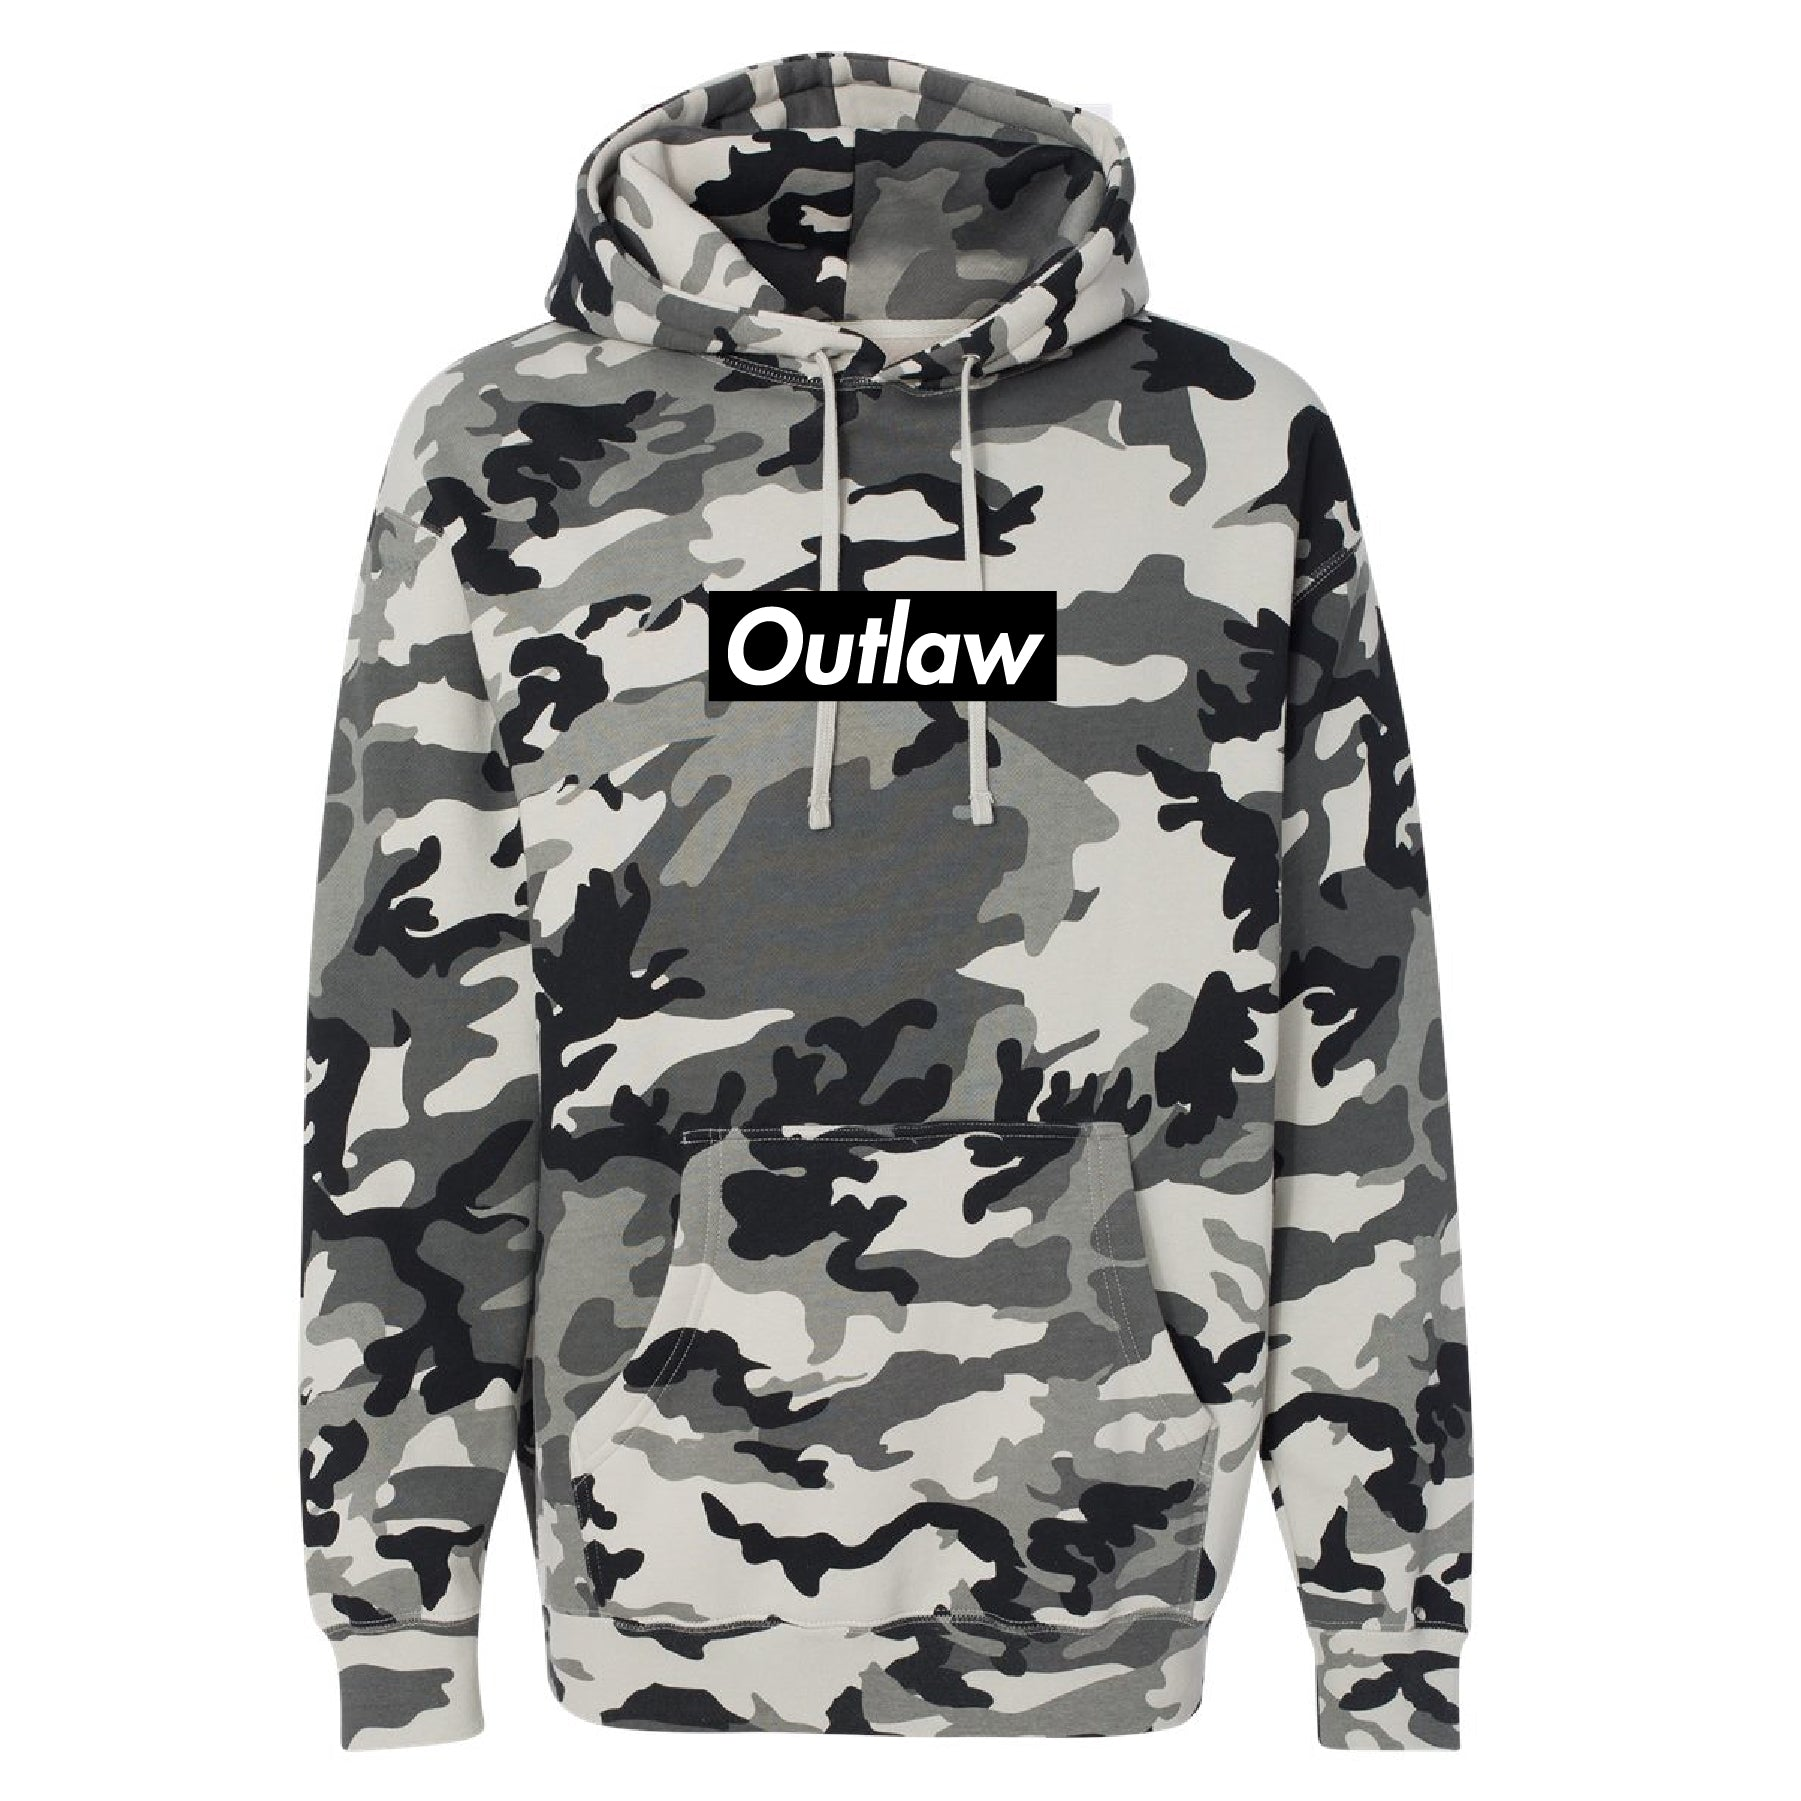 Outlaw Snow Camo Hoodie